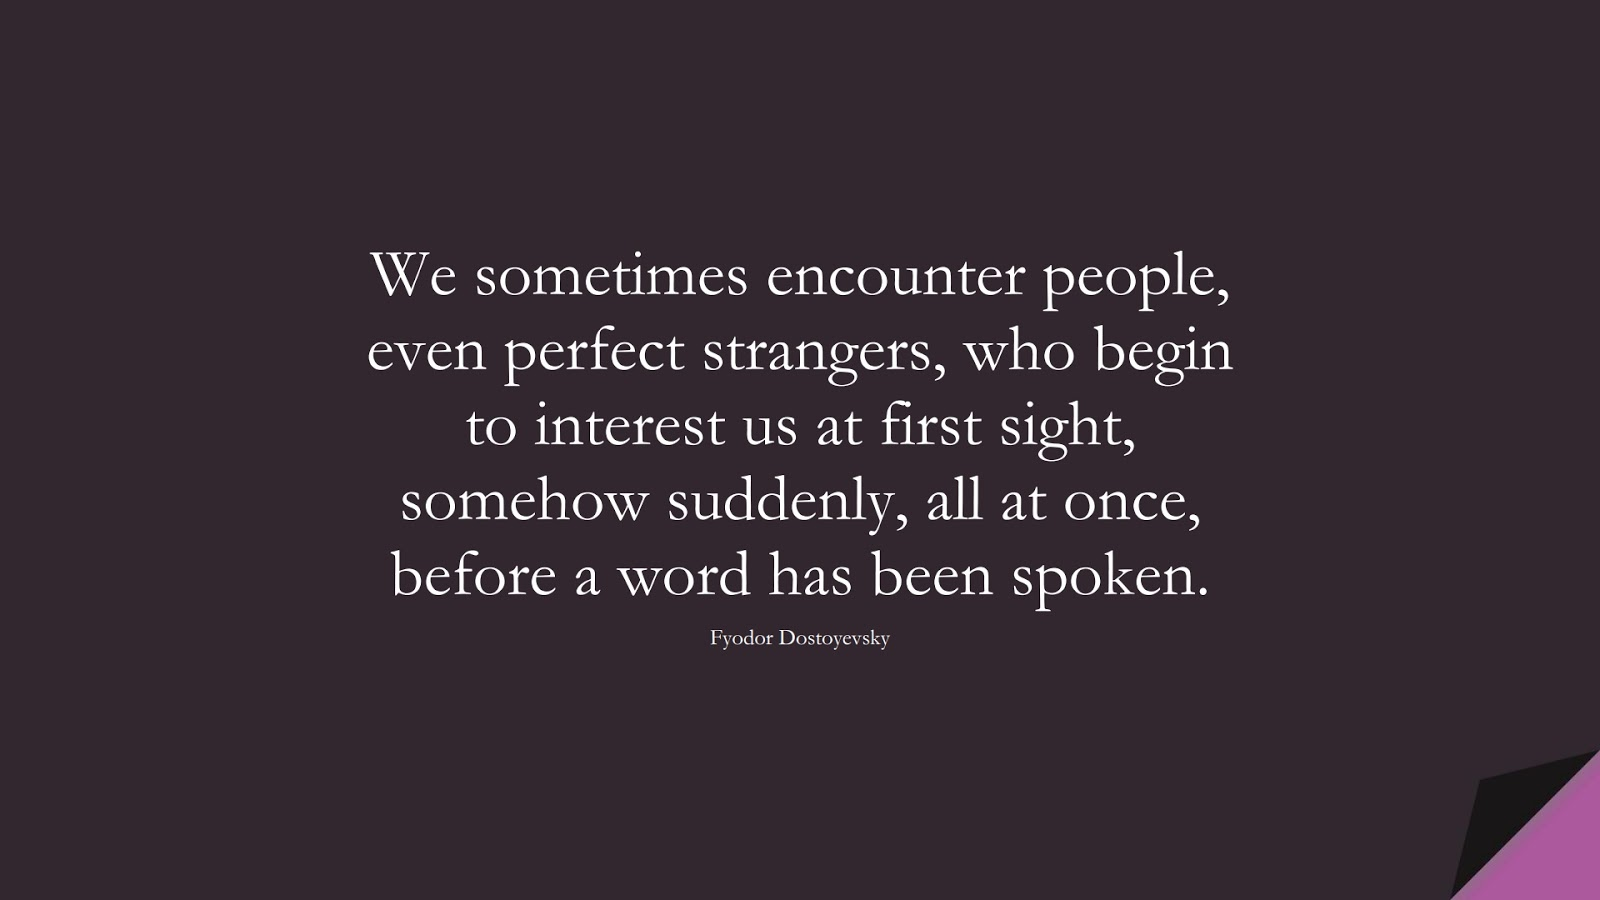 We sometimes encounter people, even perfect strangers, who begin to interest us at first sight, somehow suddenly, all at once, before a word has been spoken. (Fyodor Dostoyevsky);  #RelationshipQuotes